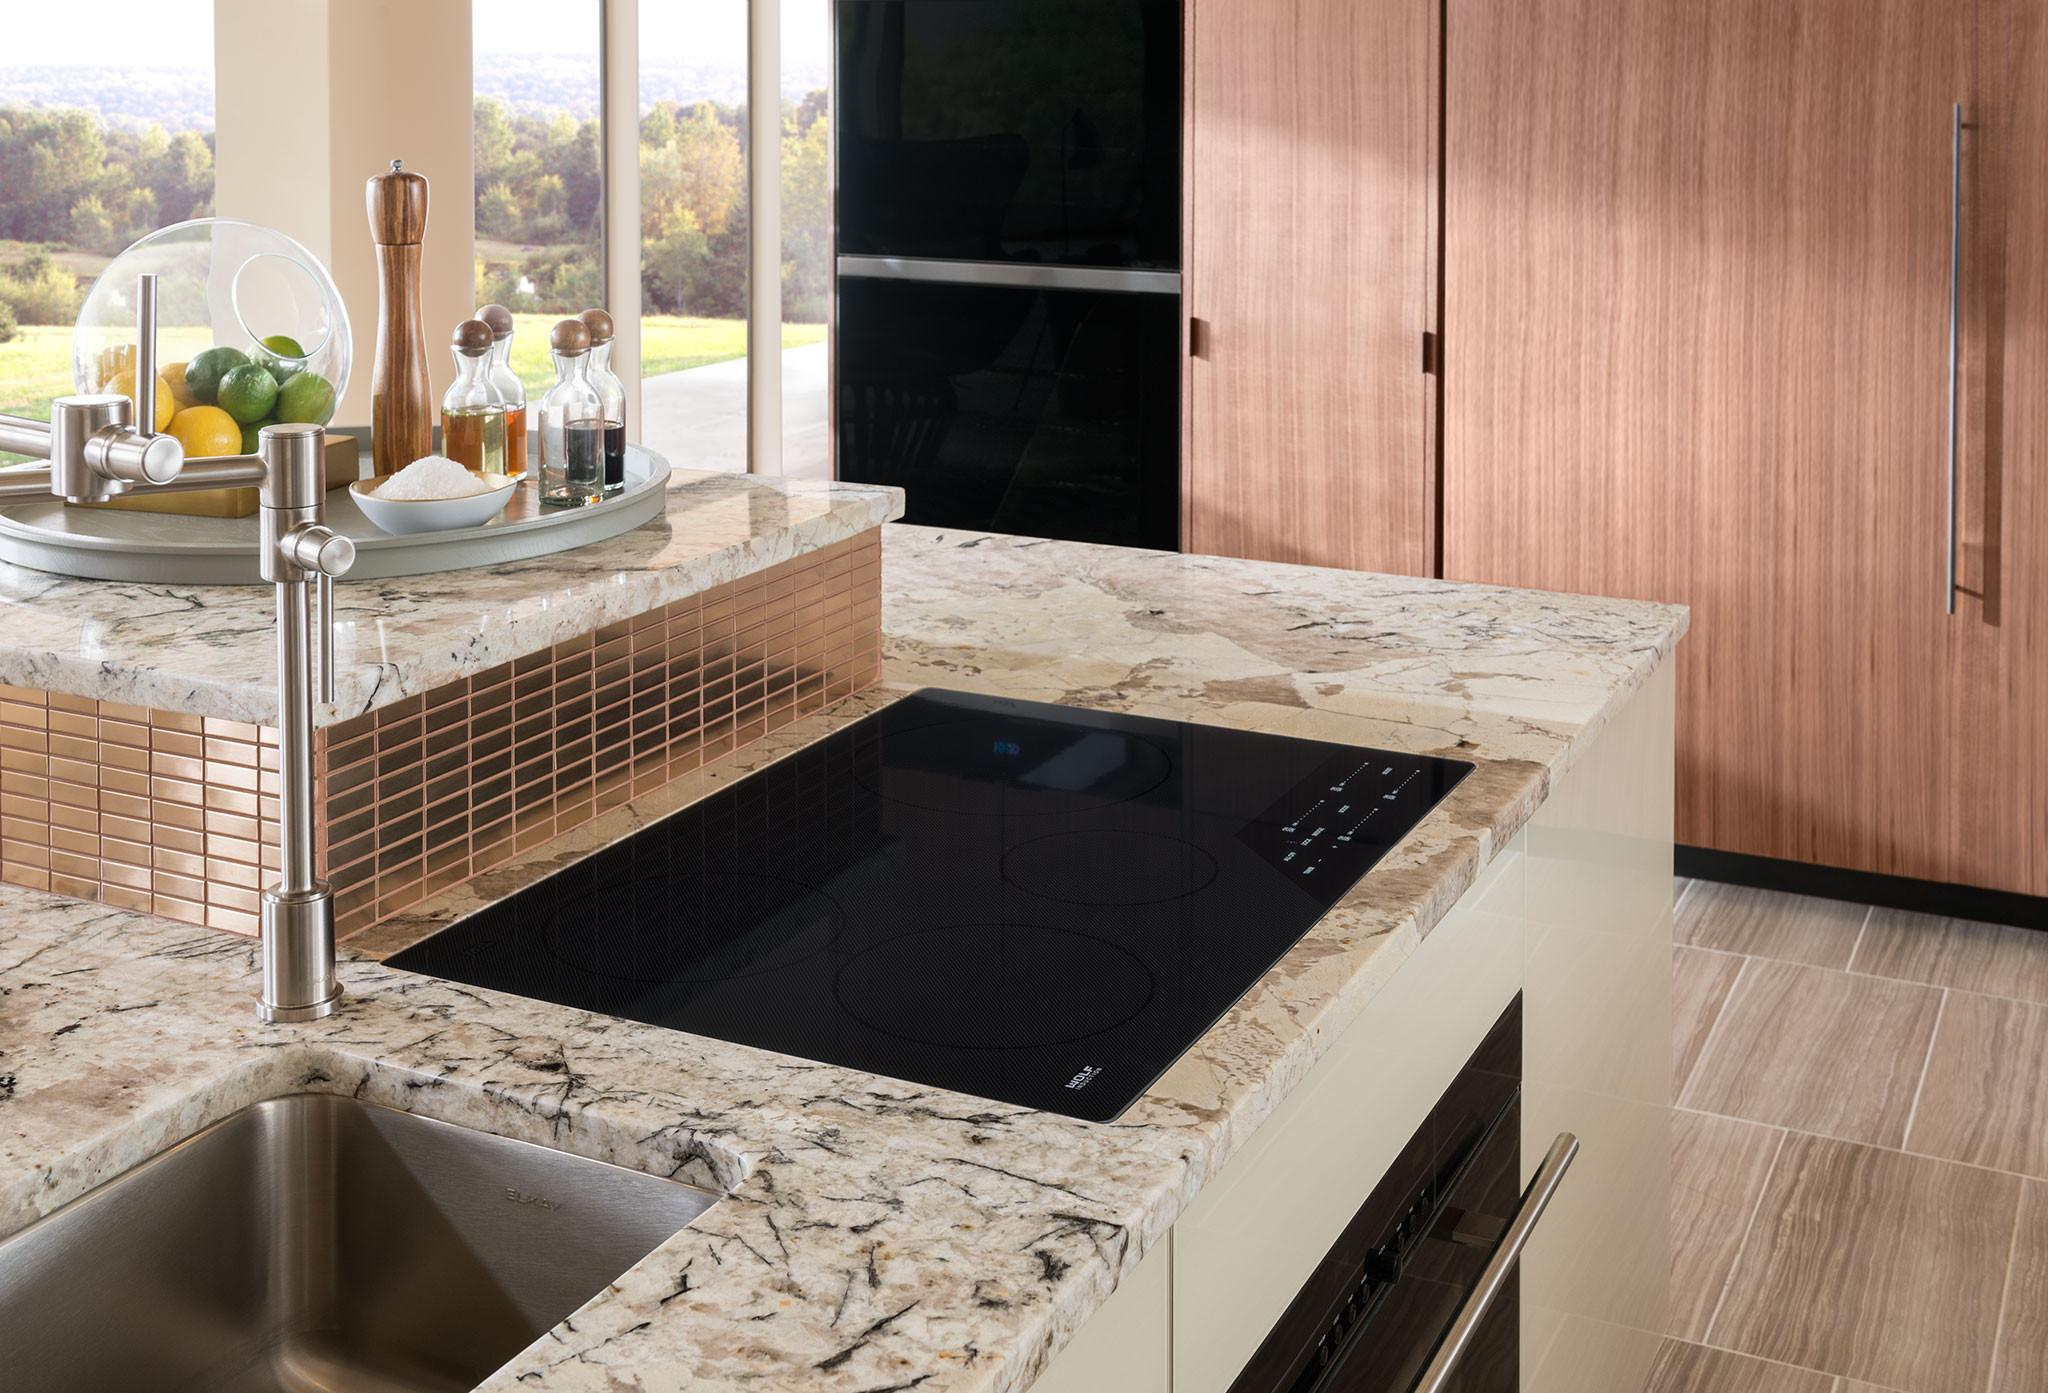 Top Kitchen Design Trends 2015 Blending New Tech